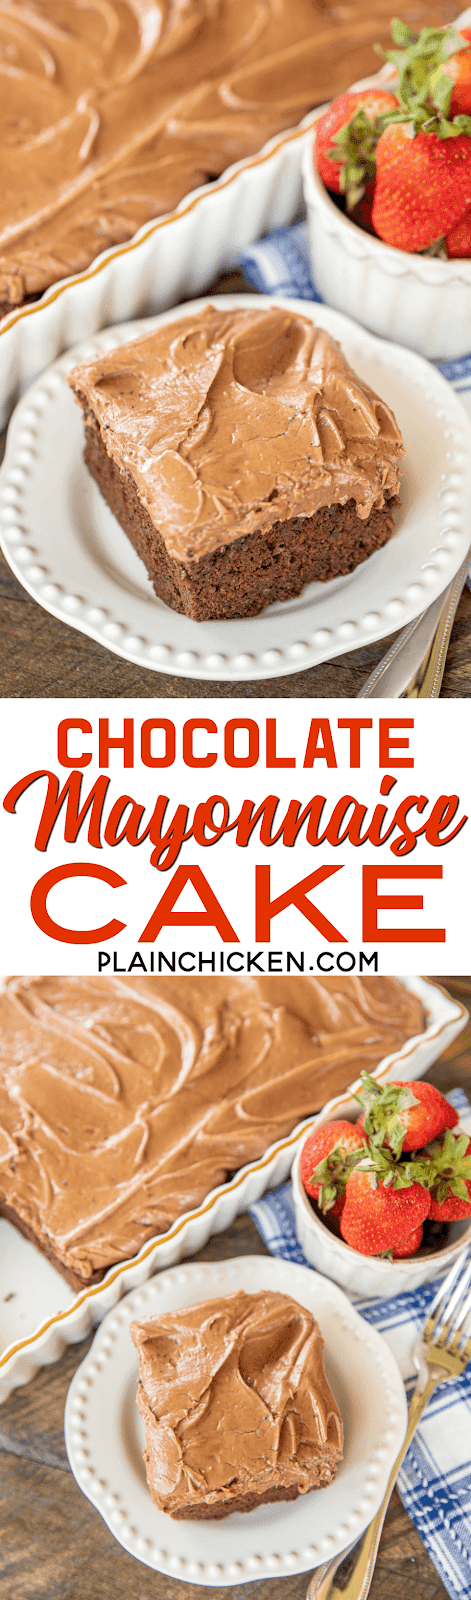 Chocolate Mayonnaise Cake - sounds crazy - CRAZY good!!! Seriously the best chocolate cake I've ever eaten! Moist chocolate cake topped with a homemade chocolate cream cheese frosting - YUM! Flour, cocoa, mayonnaise, baking soda, baking powder, salt, eggs, brown sugar, vanilla, water, cream cheese, butter, heavy cream, powdered sugar. Everyone LOVES this homemade chocolate cake!! #dessert #chocolatecake #chocolate